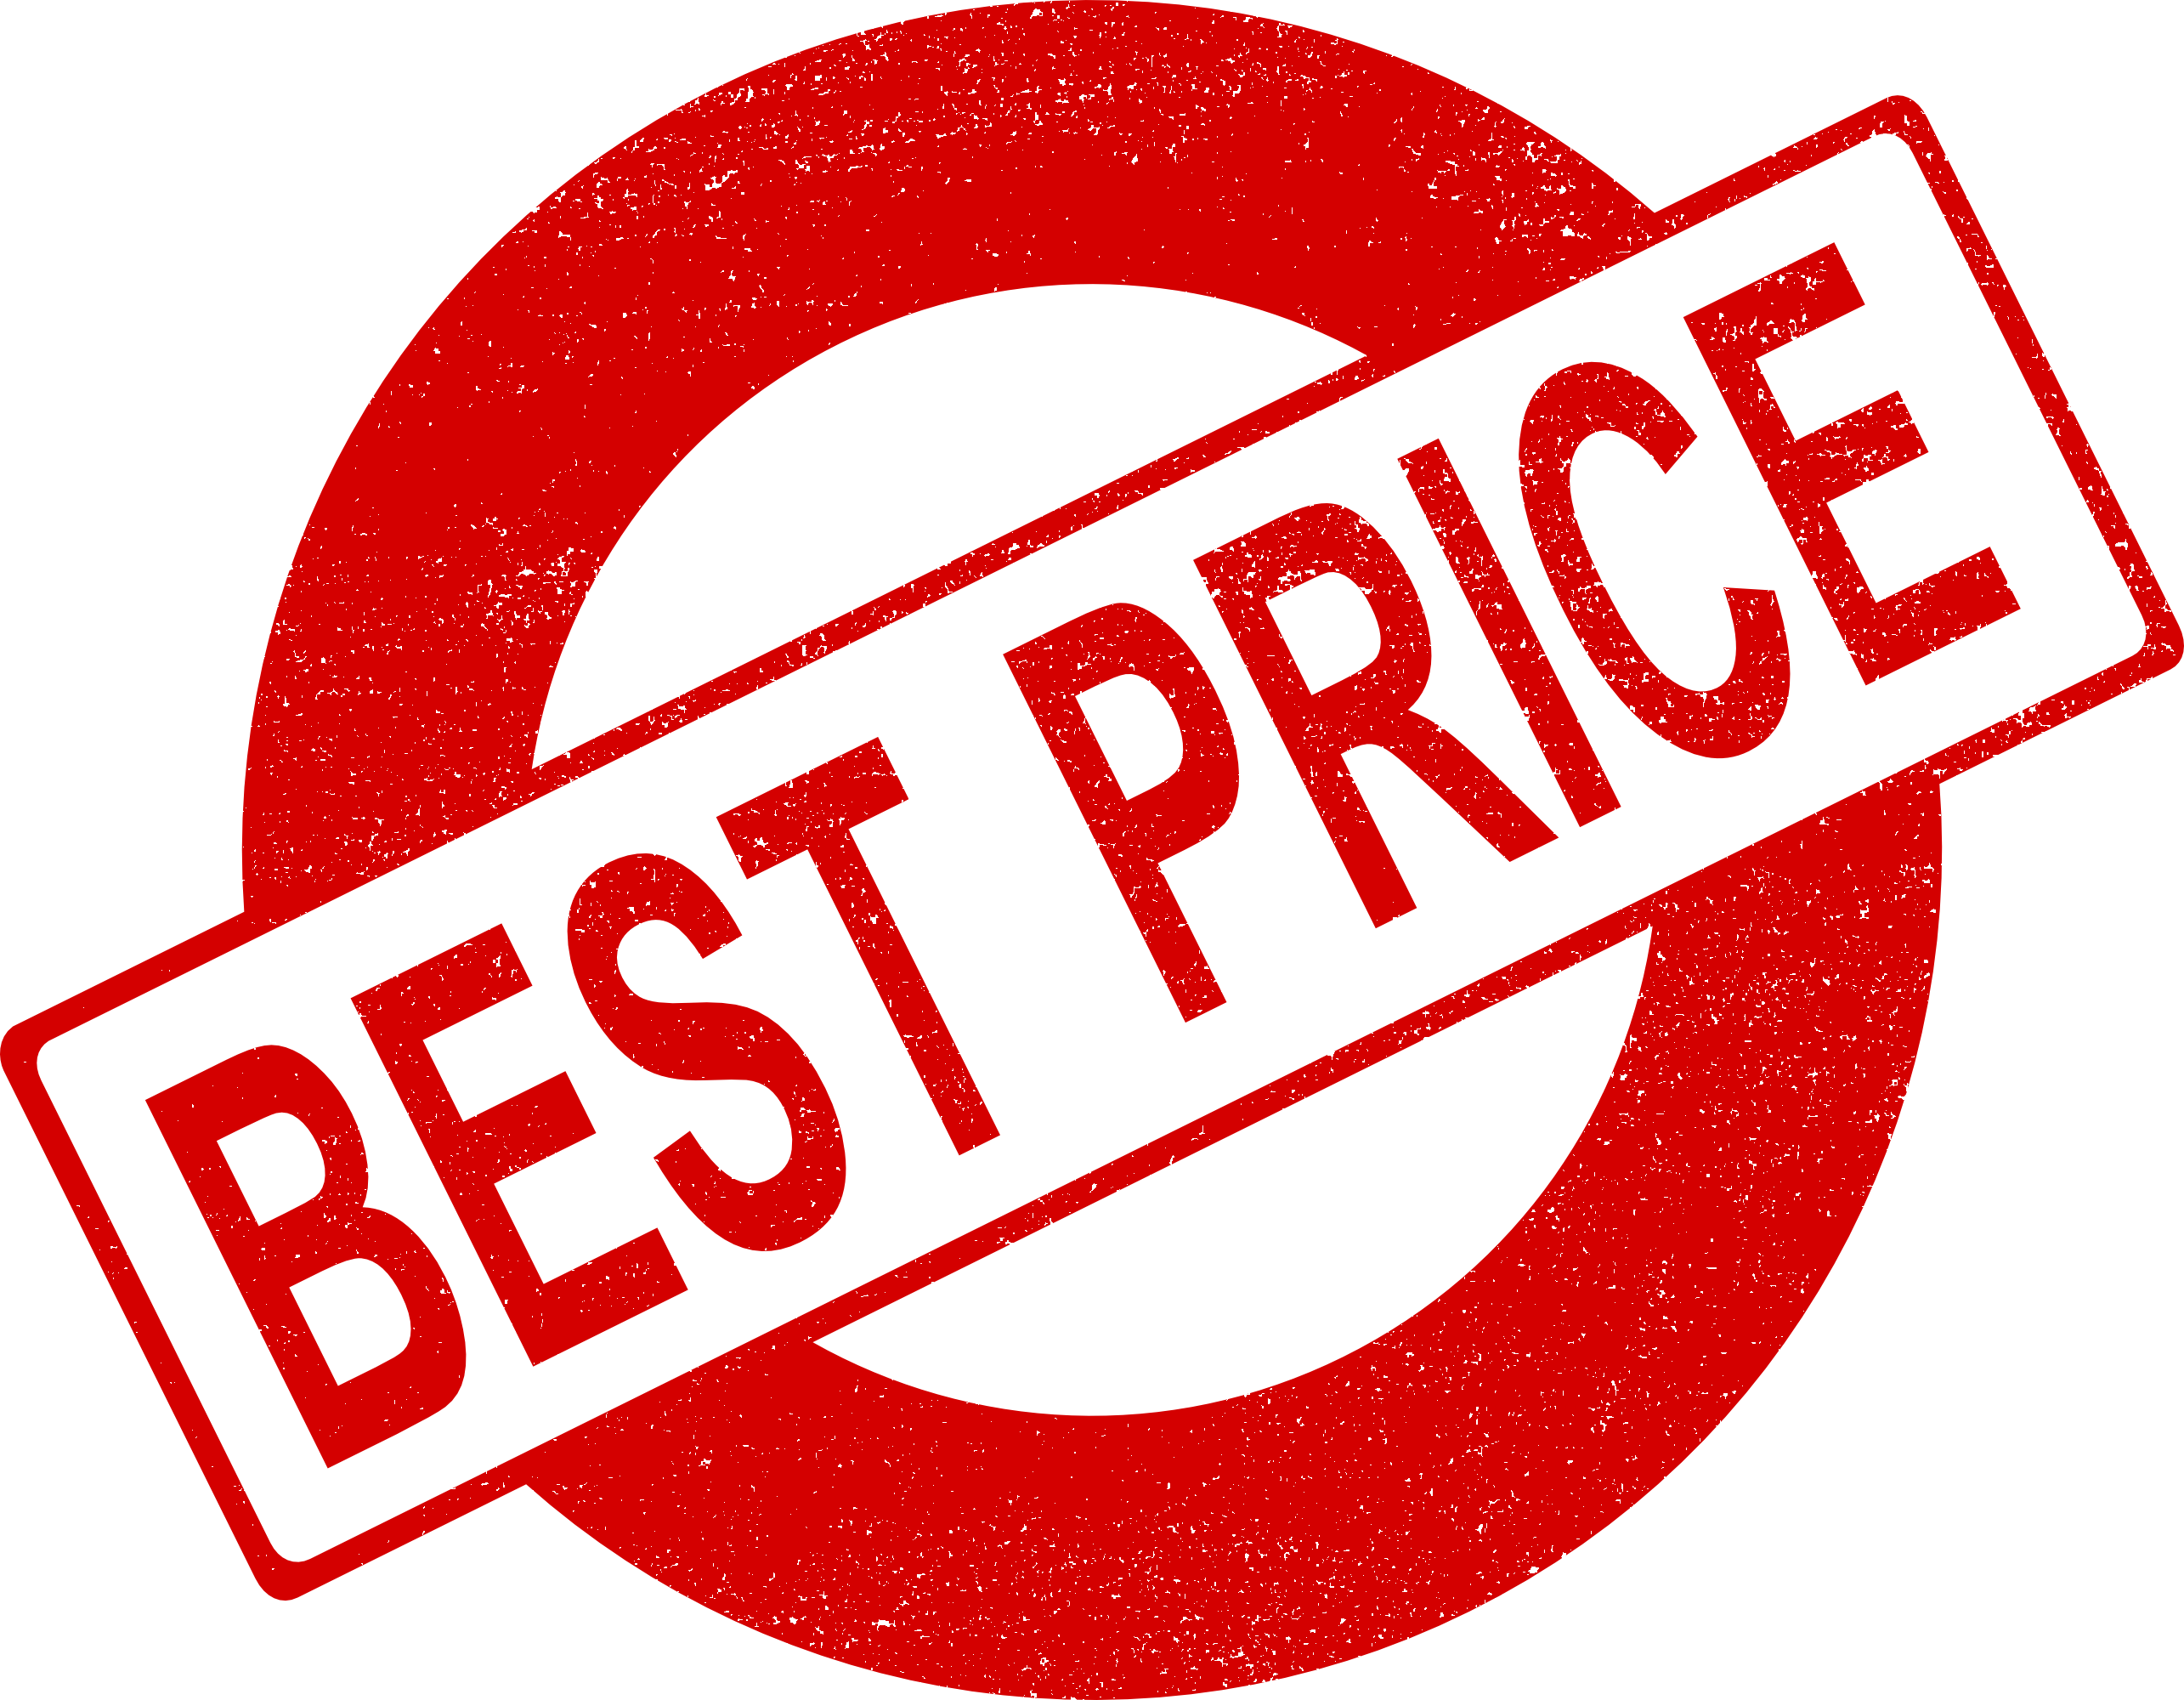 best price vector. Stamp clipart banned